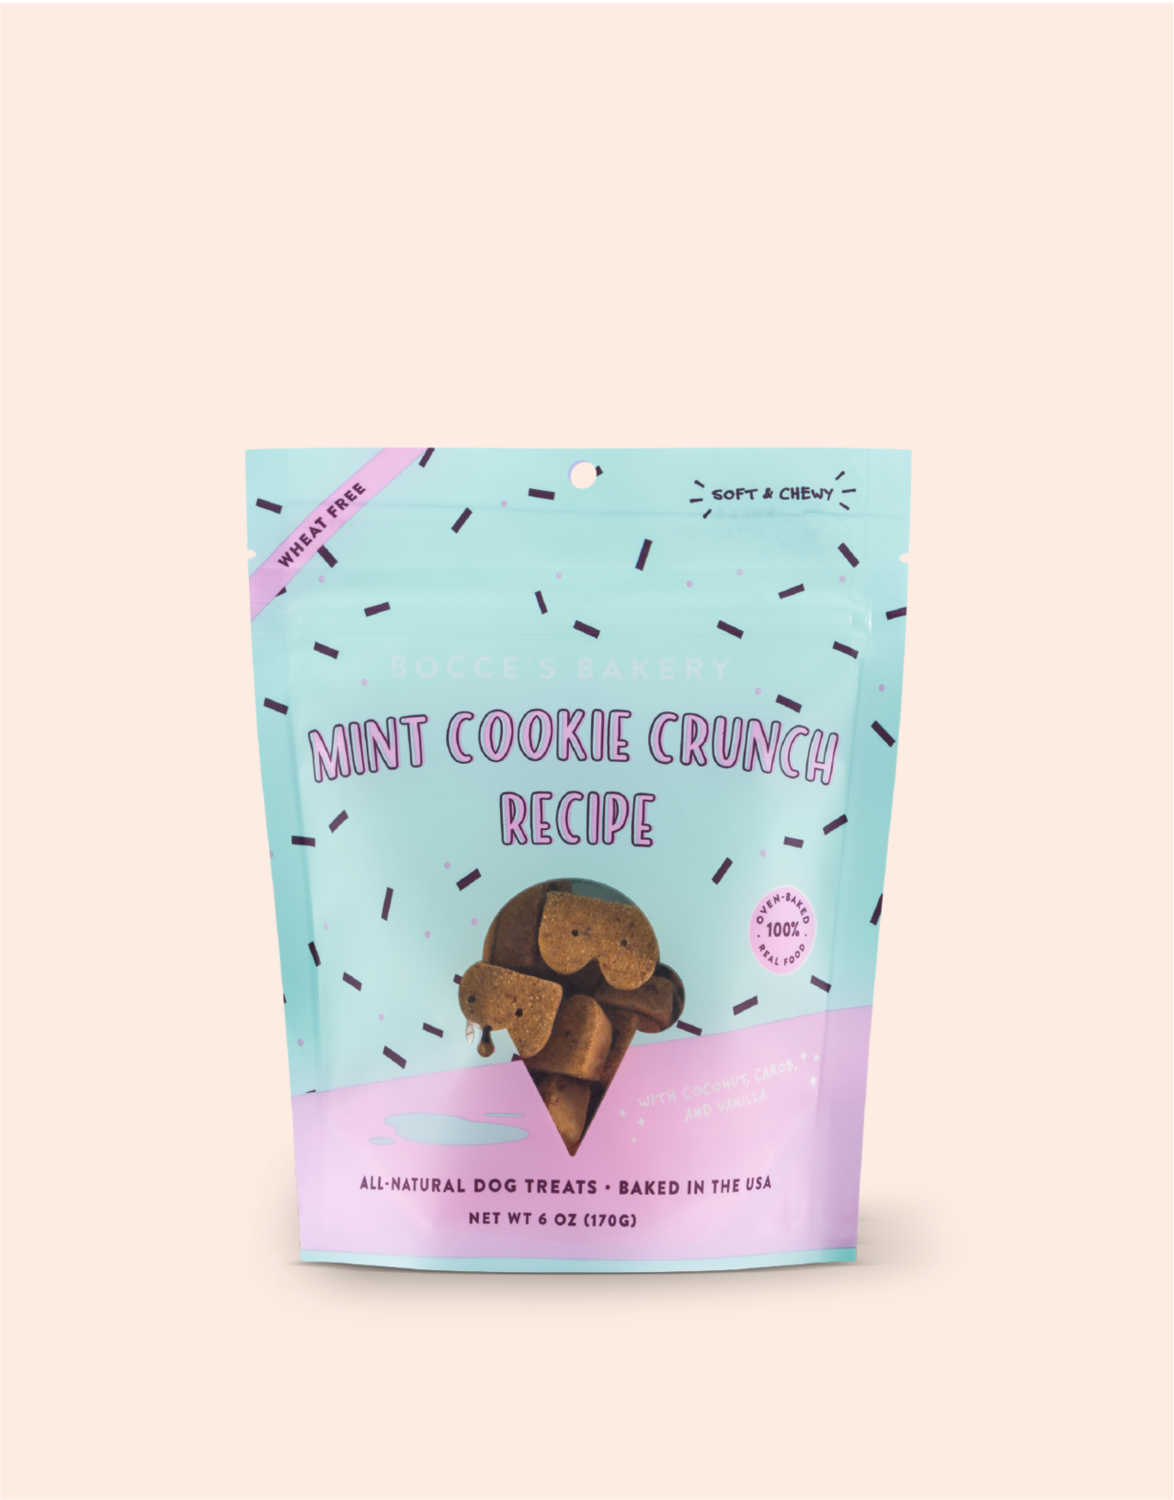 Mint Cookie Crunch - BOCCE'S